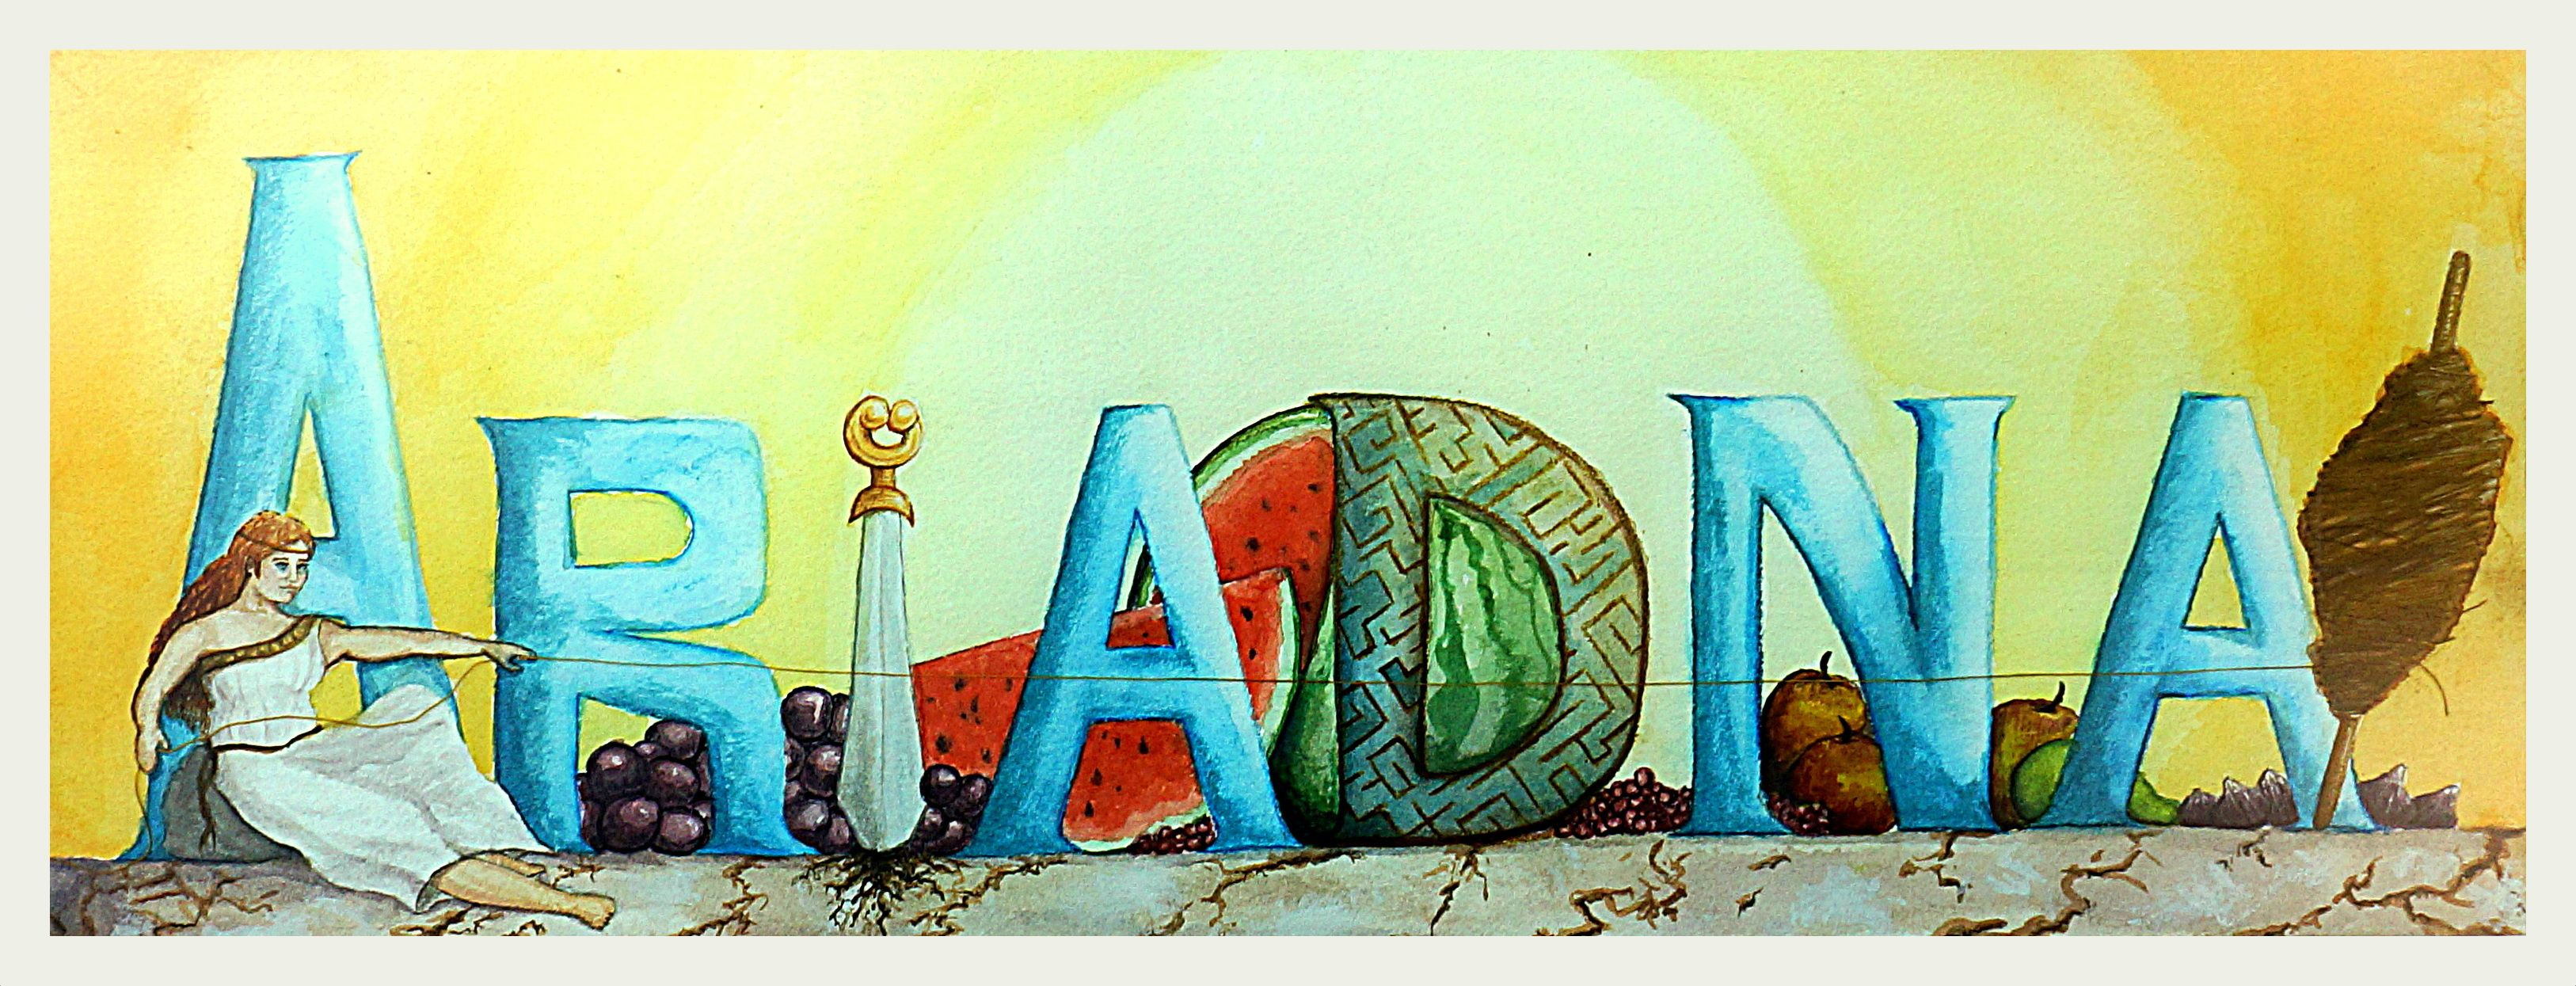 """Ariadna, the Spanish version for """"Ariadne"""". This was the present I did for the new born of one of my best friends."""